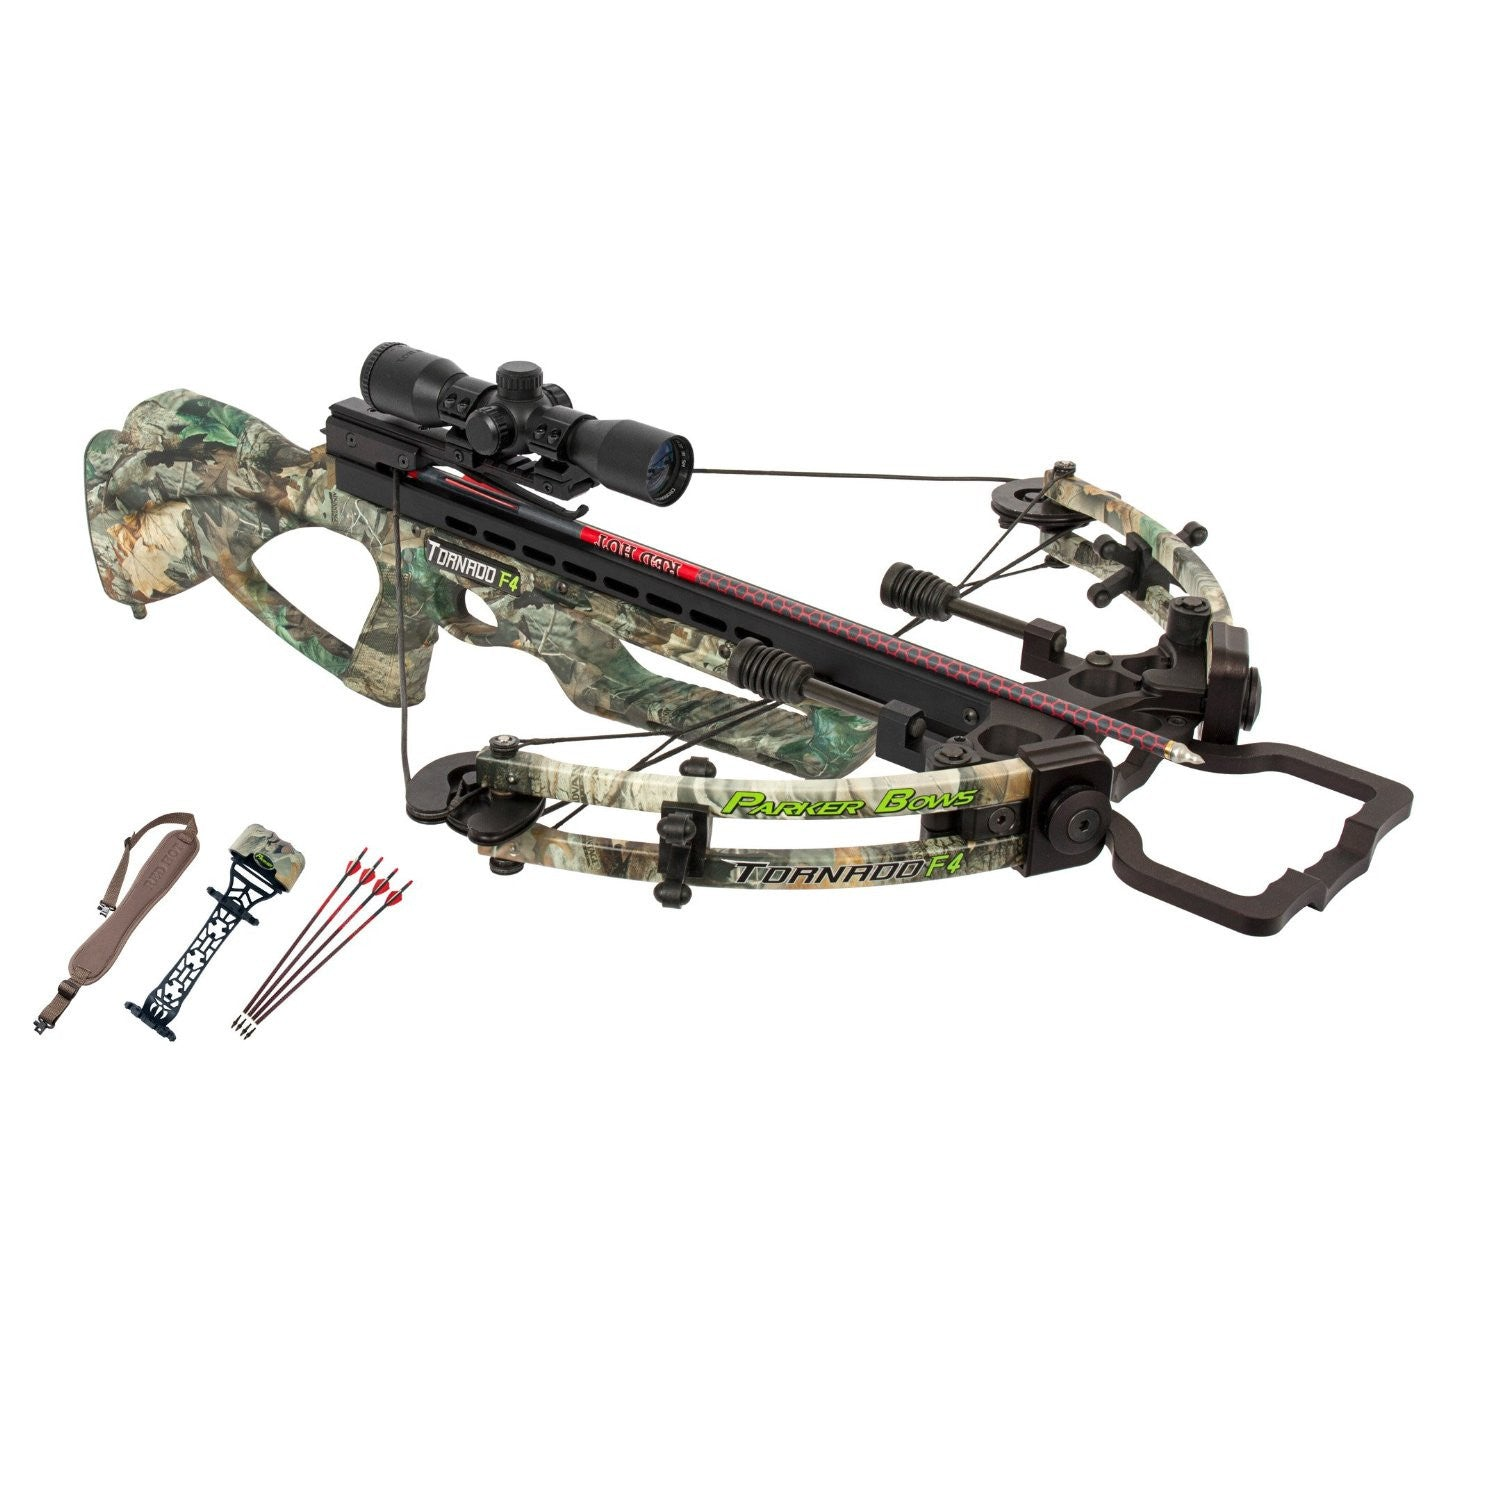 Parker Bows Tornado F4 Crossbow Package with 3X Pin-Point Scope